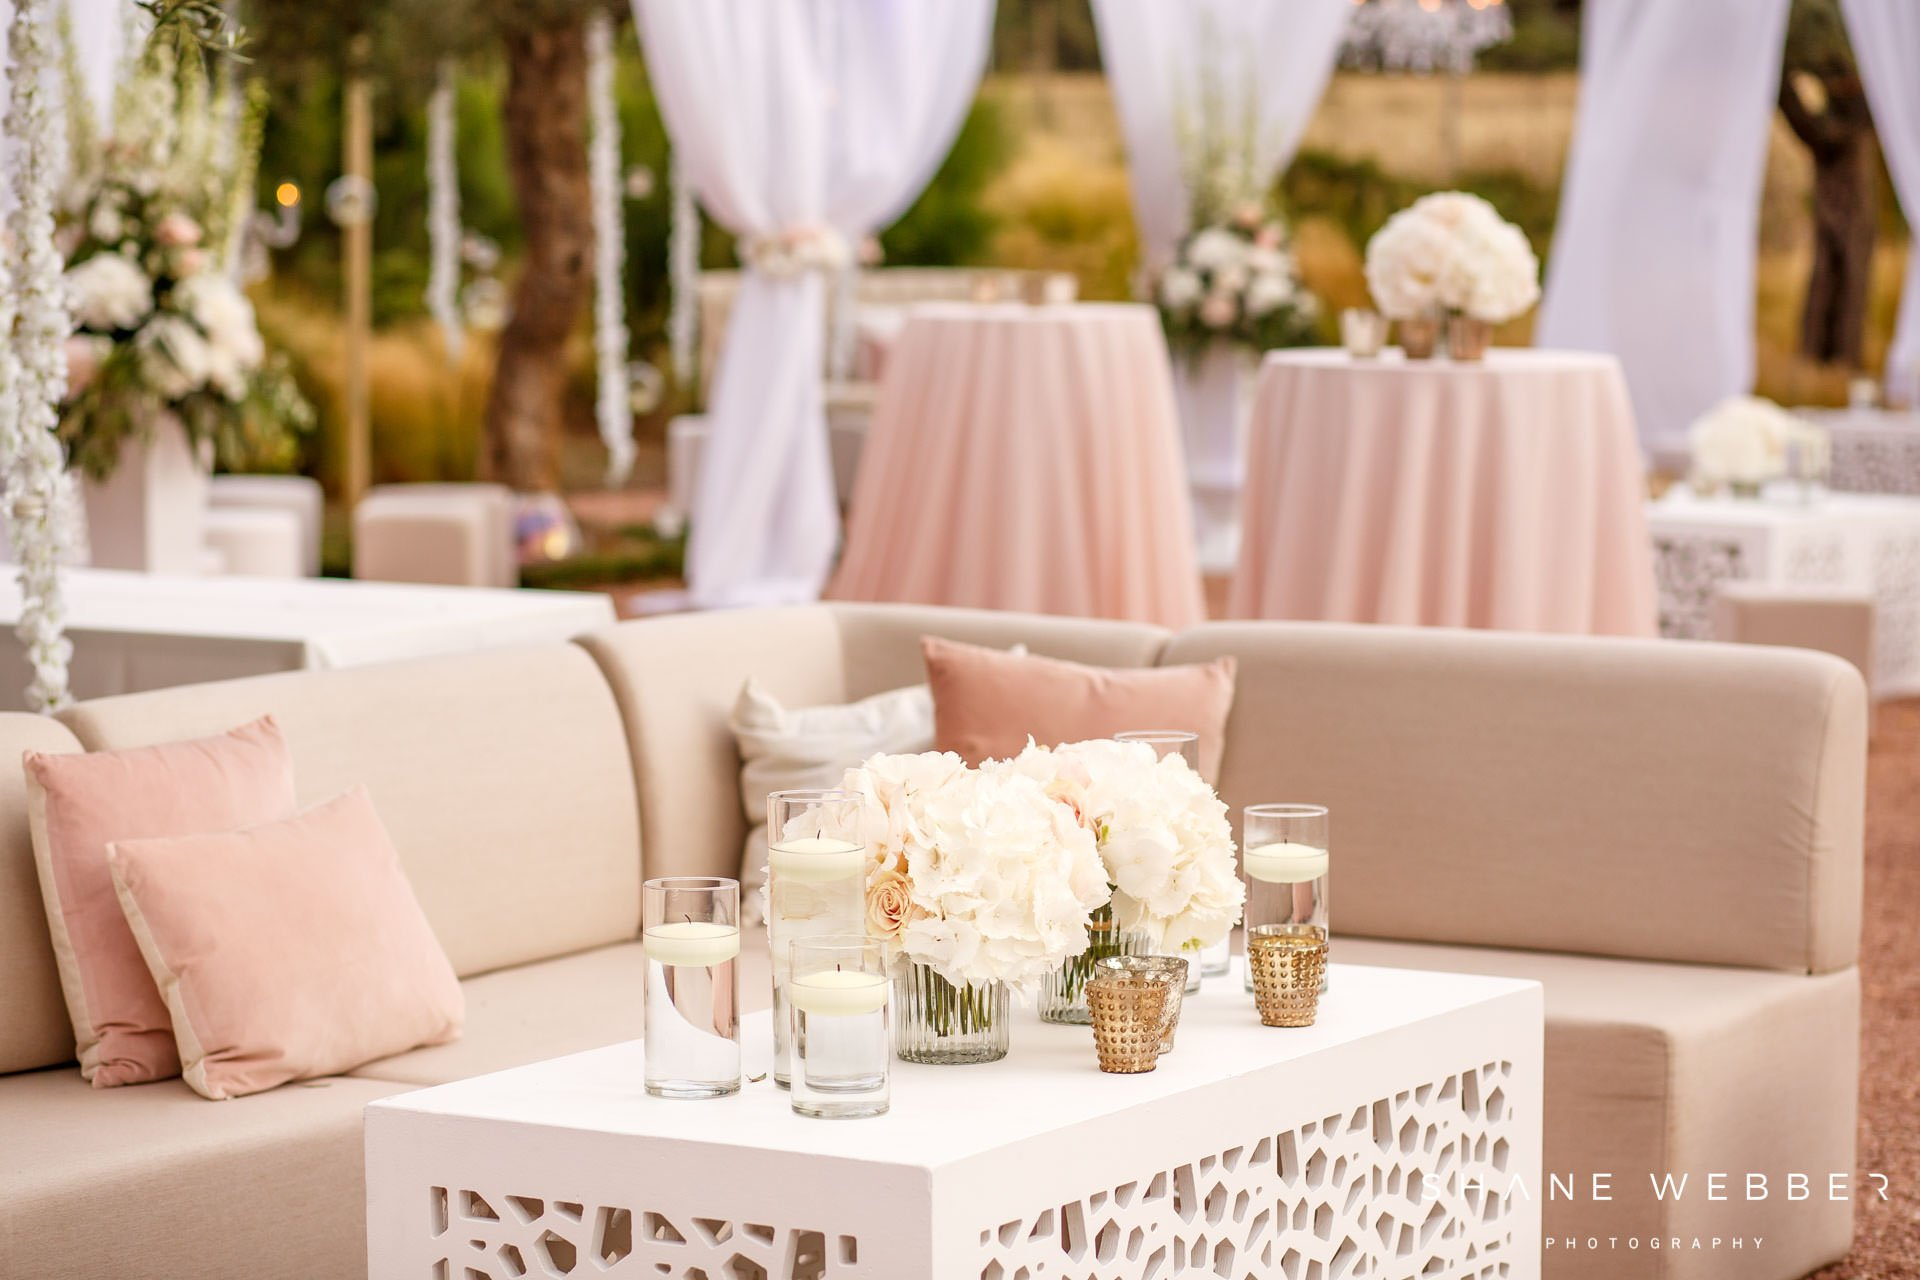 Blush pink and netural wedding chill out area design